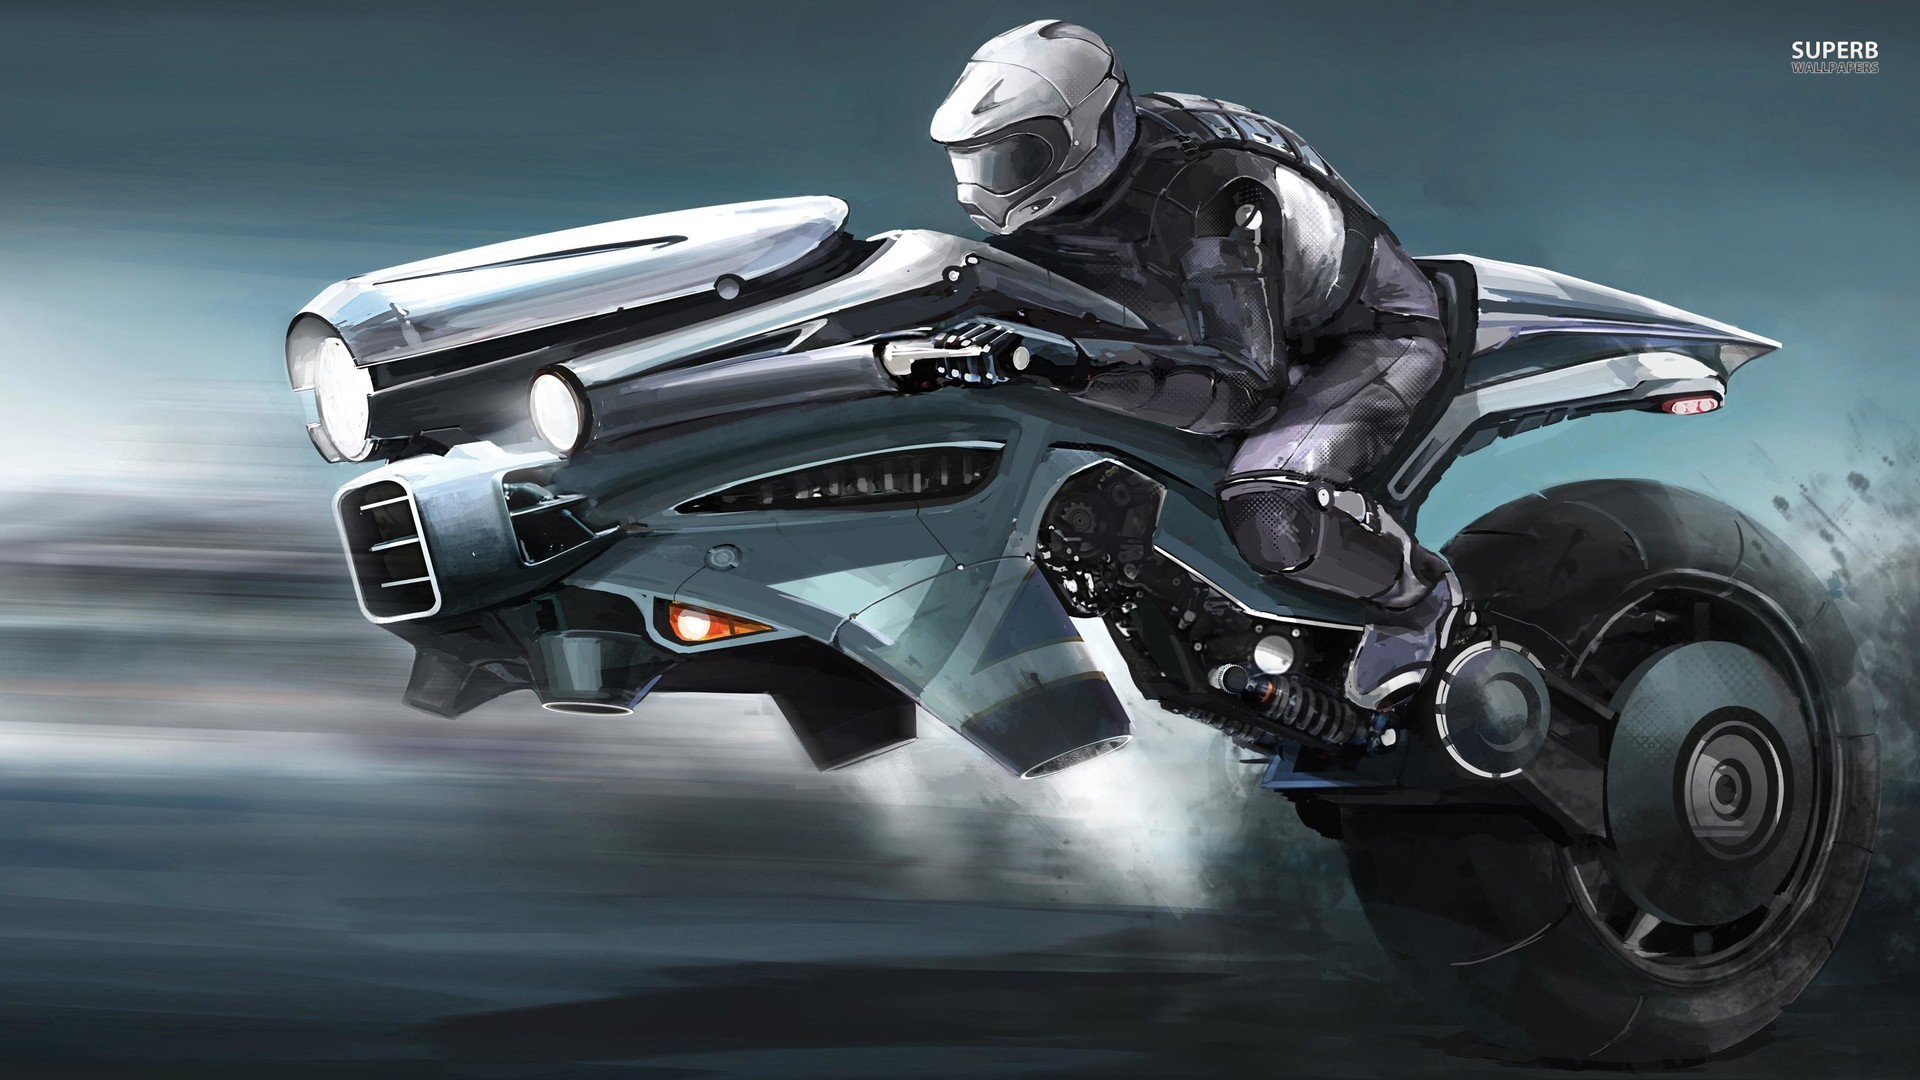 riding the futuristic bike wallpaper | wide screen wallpaper 1080p,2k,4k